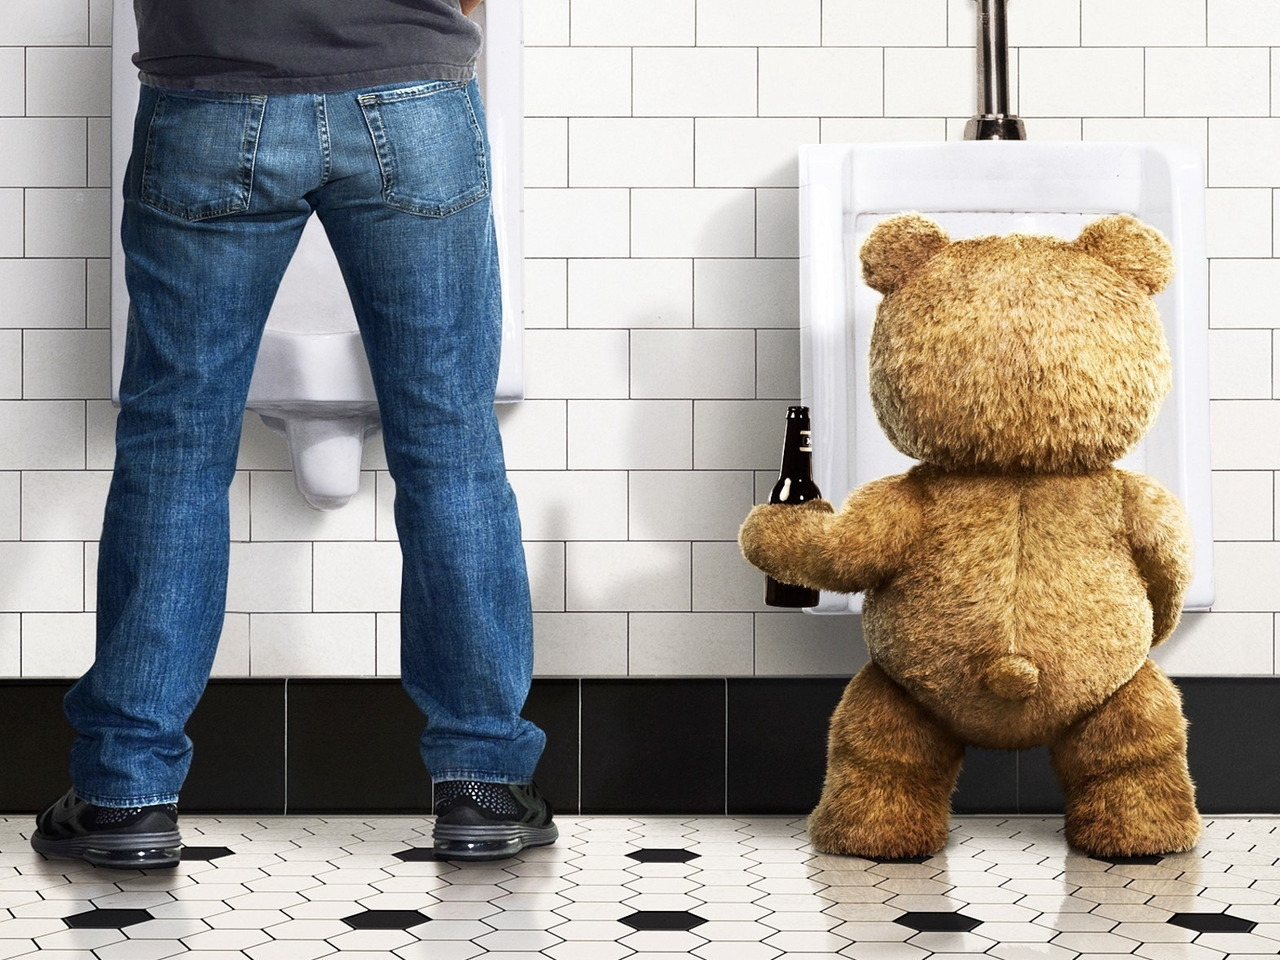 Ted Movie for 1280 x 960 resolution